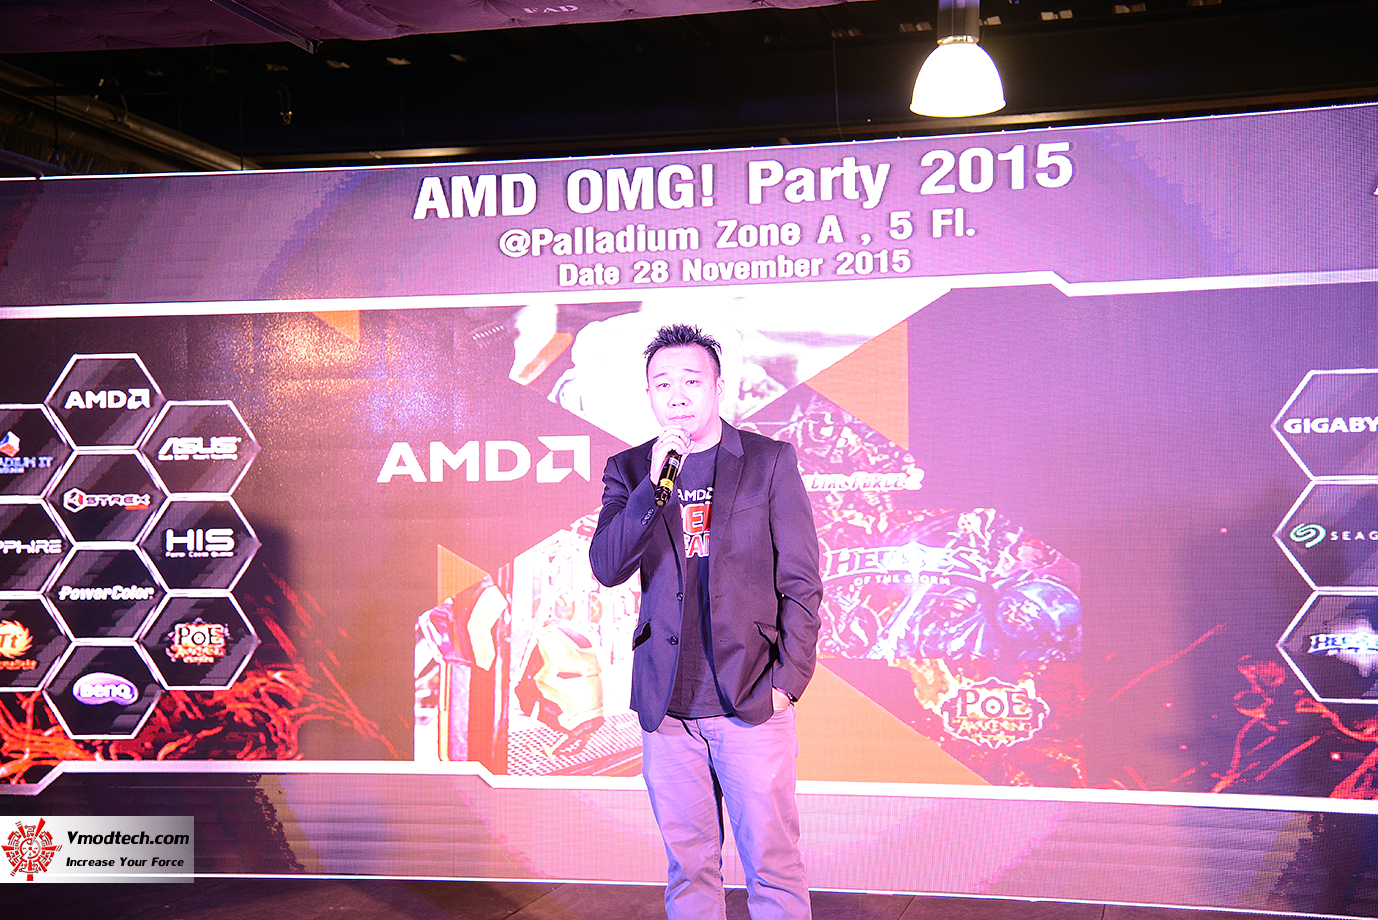 dsc 6533 AMD OMG! Party 2015 (AMD Overclock Modding Gaming Party 2015)